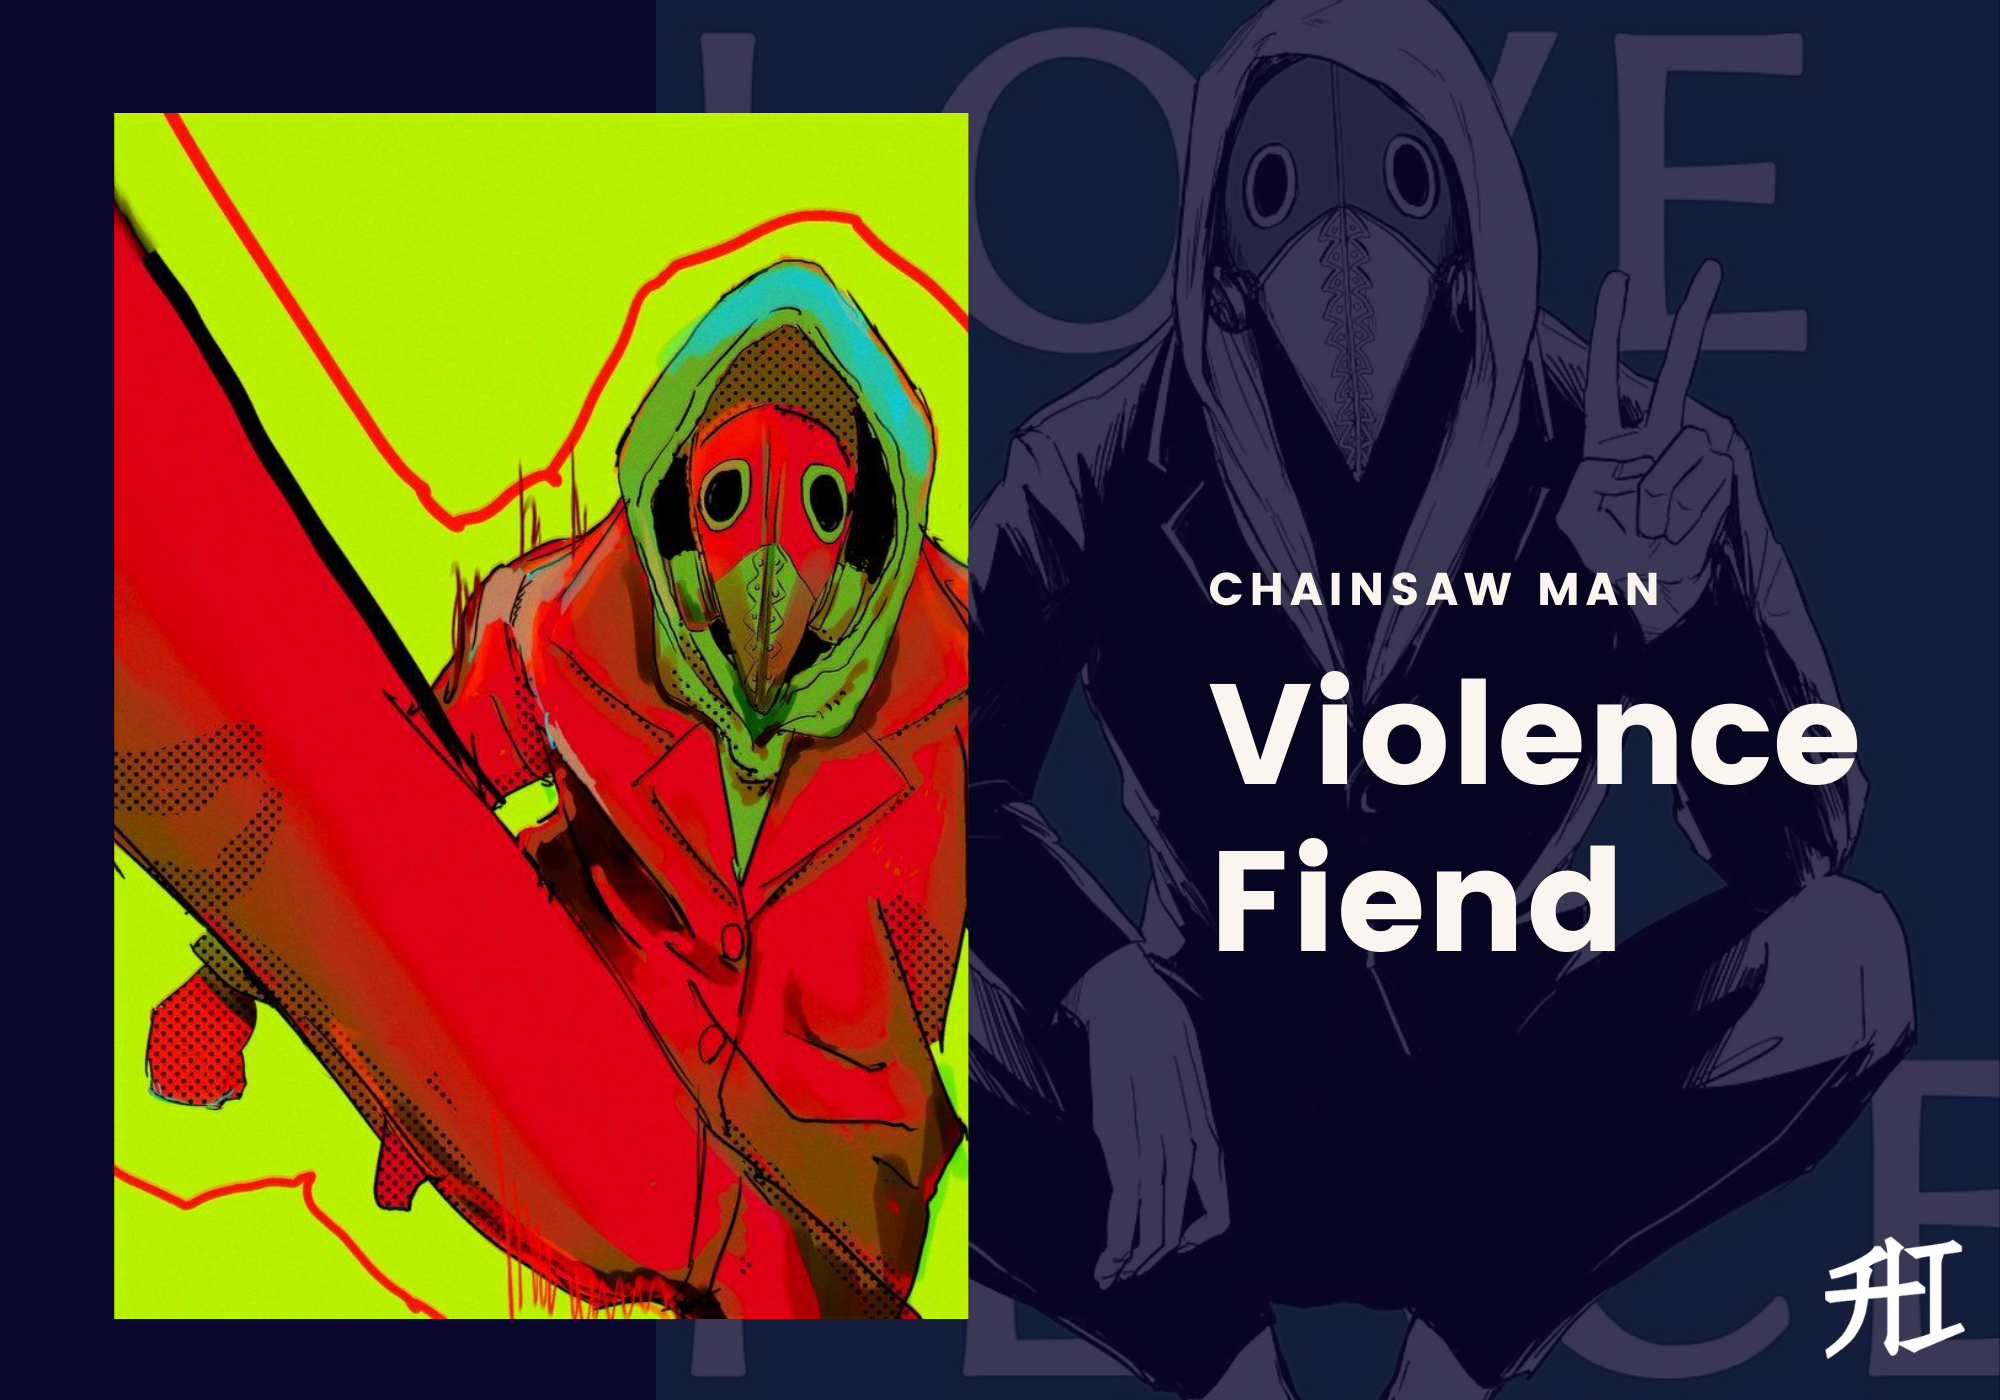 Violence Fiend strongest characters in chainsaw man